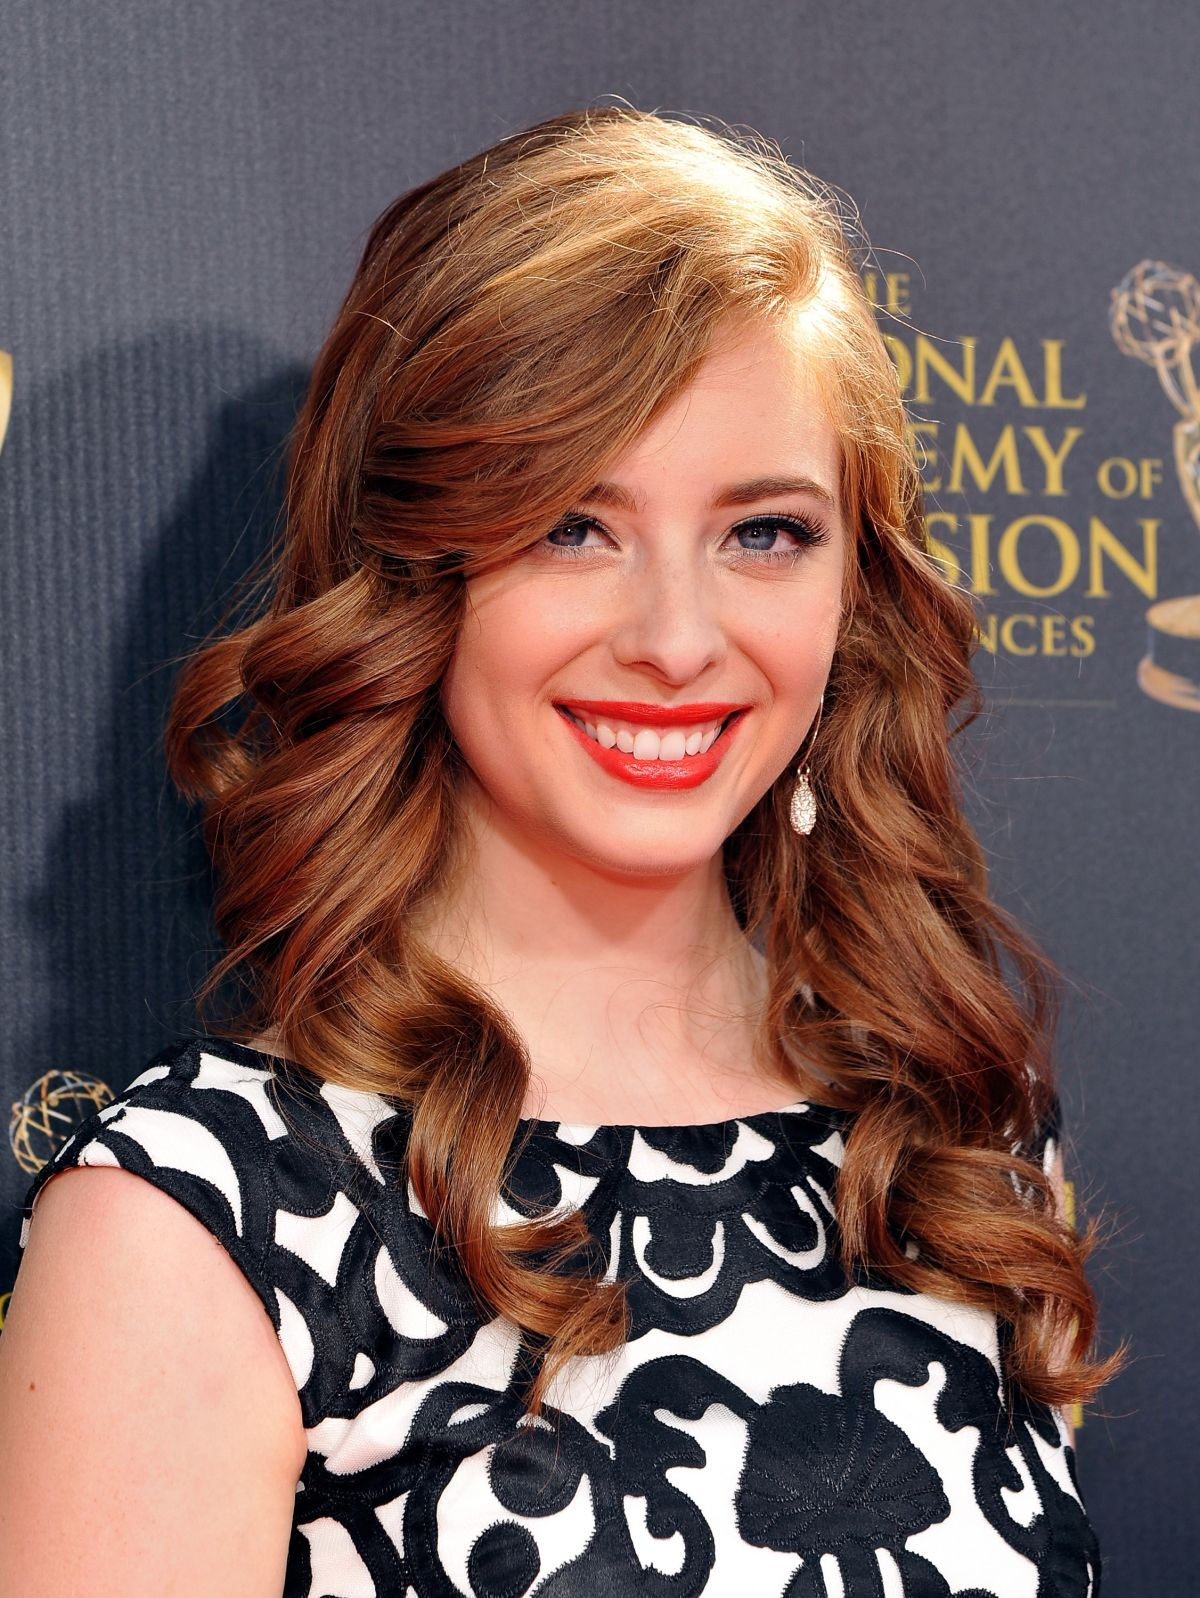 ASHLYN PEARCE at 2015 Daytime Emmy Awards in Burbank